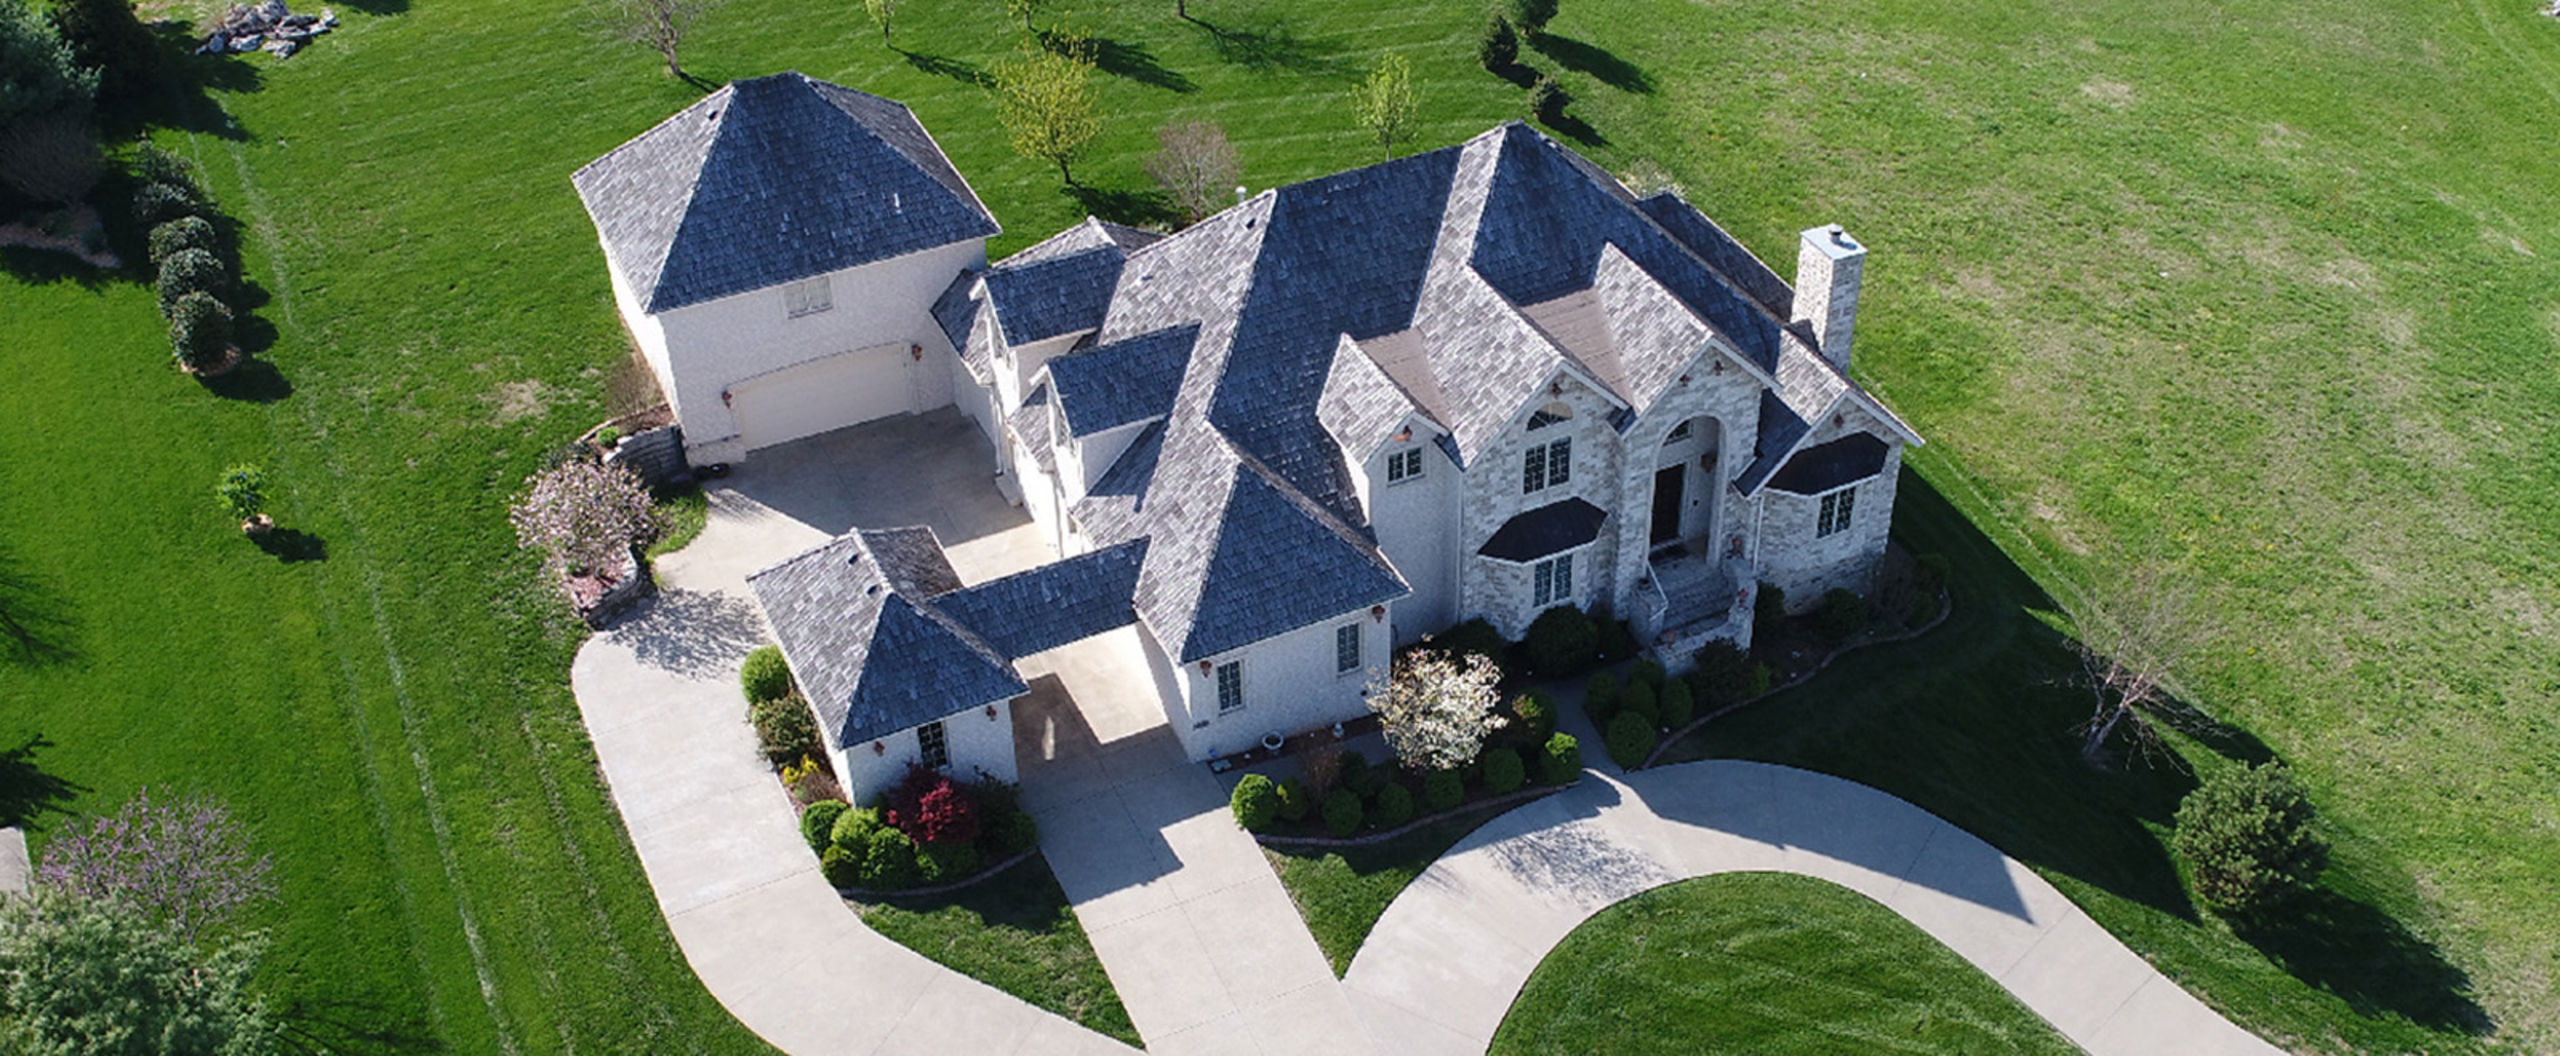 we provide aerial photography for a unique view of your property